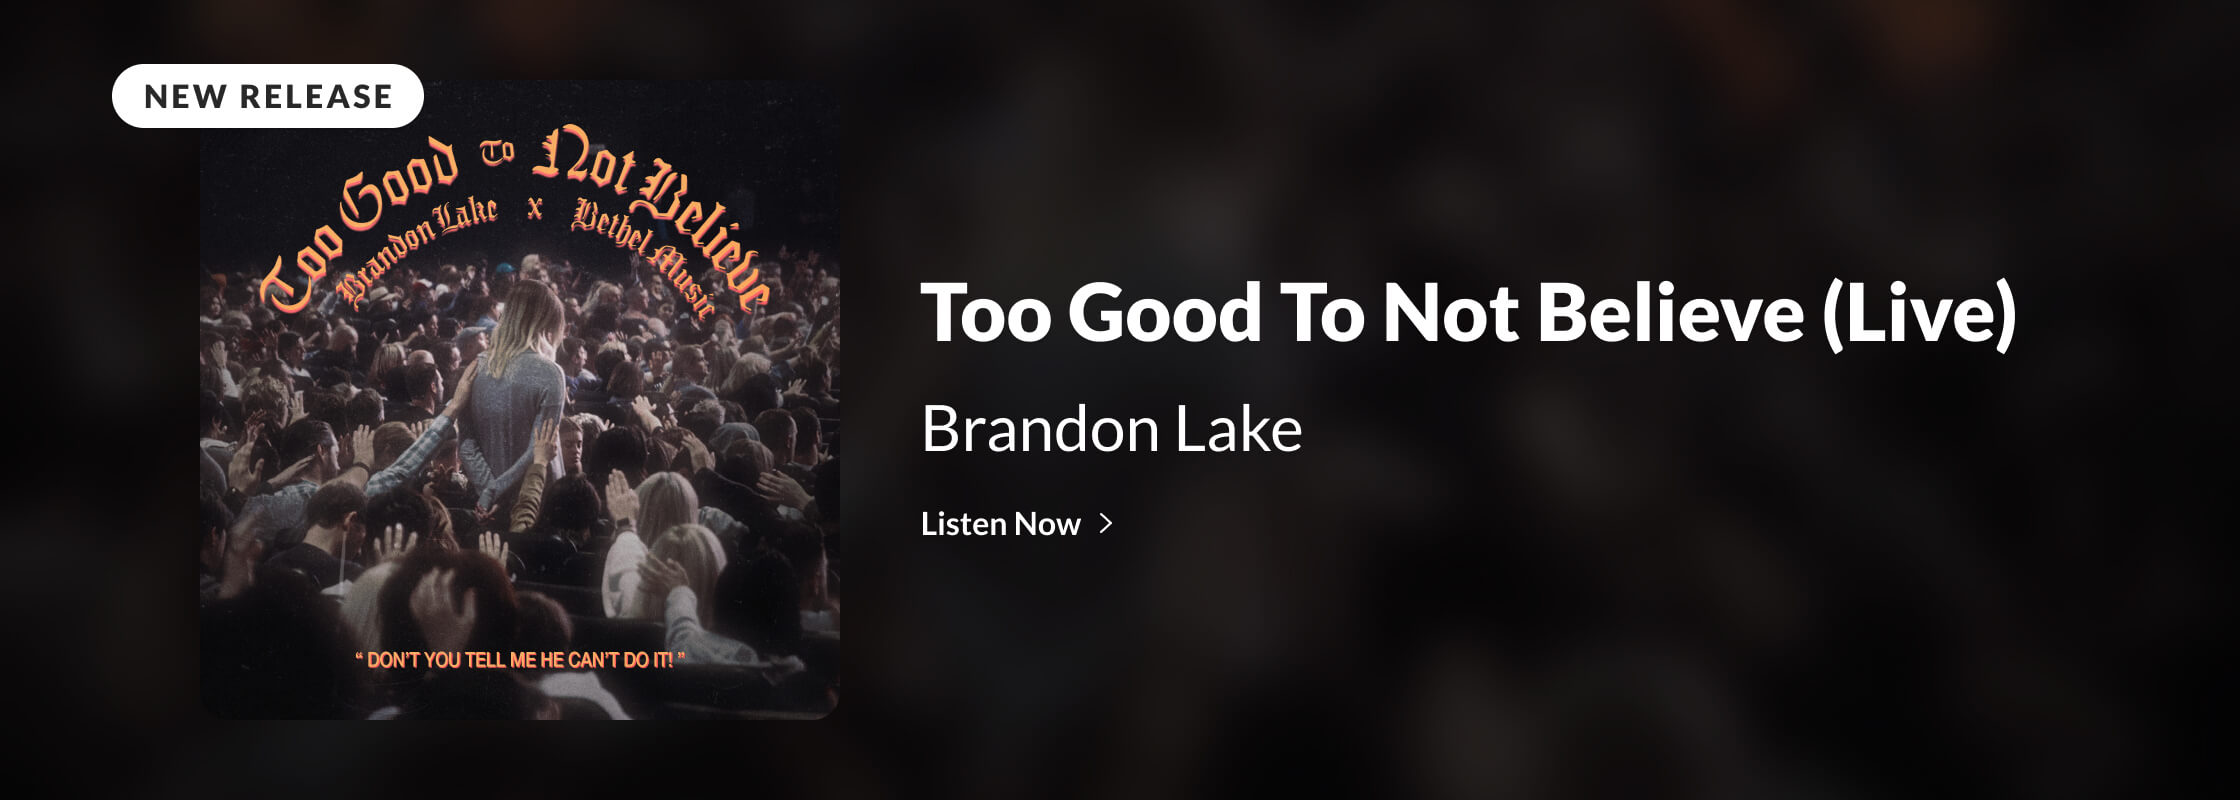 Brandon Lake | Too Good To Not Believe (Live)